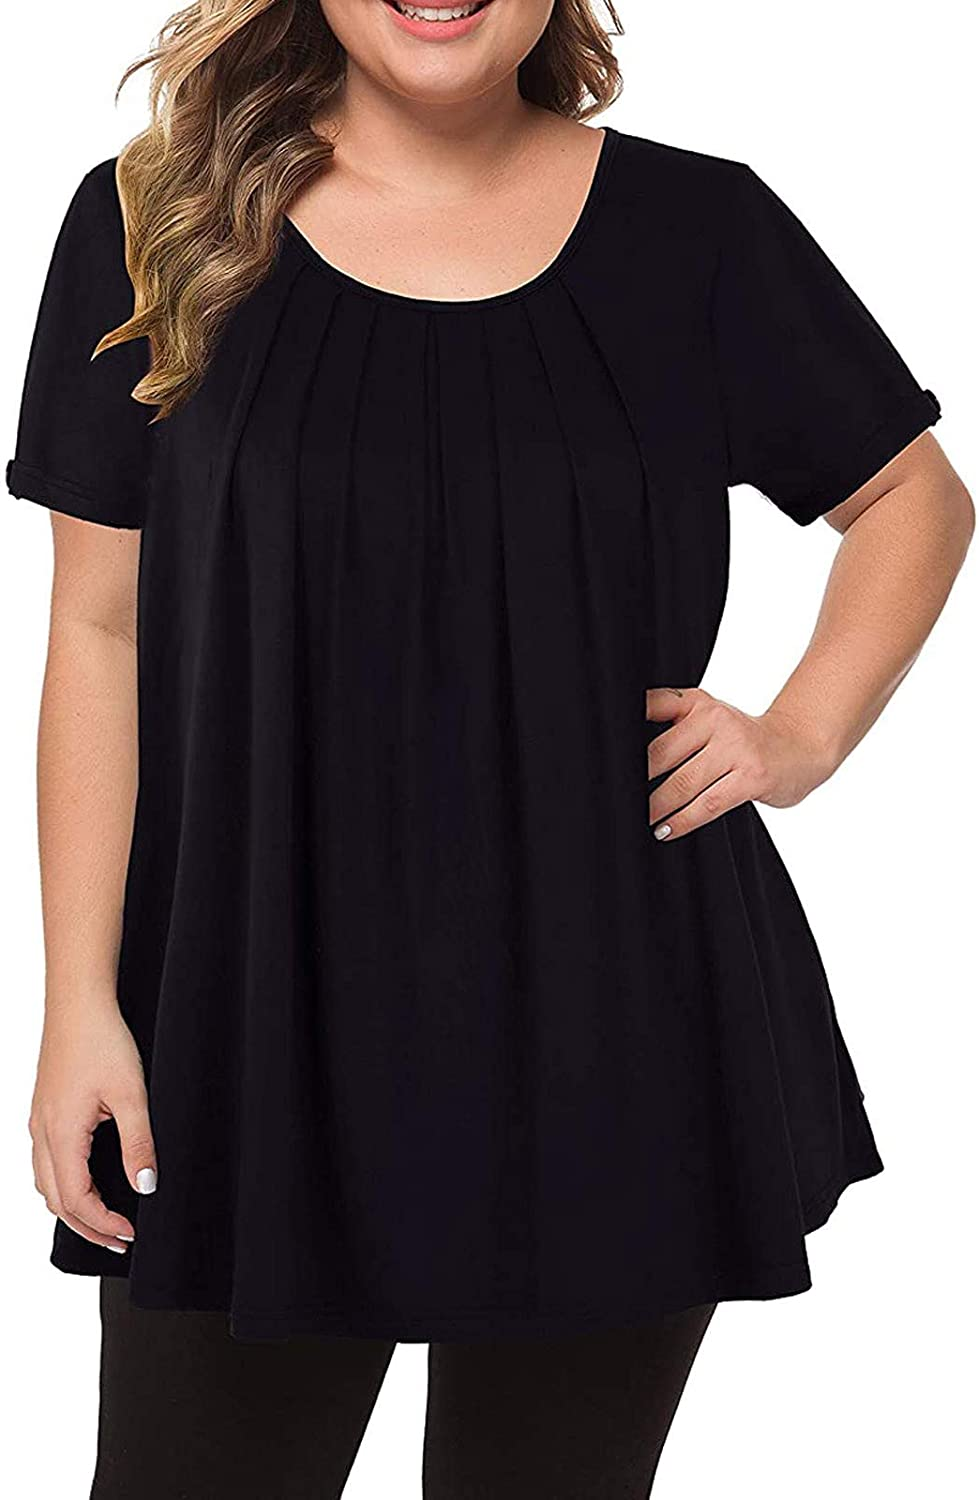 Aukbays Womens T-Shirts Summer Women's Plus Size Tops Short Sleeve Flowy Shirts Casual Tees O Neck Blouses Tunic Tops